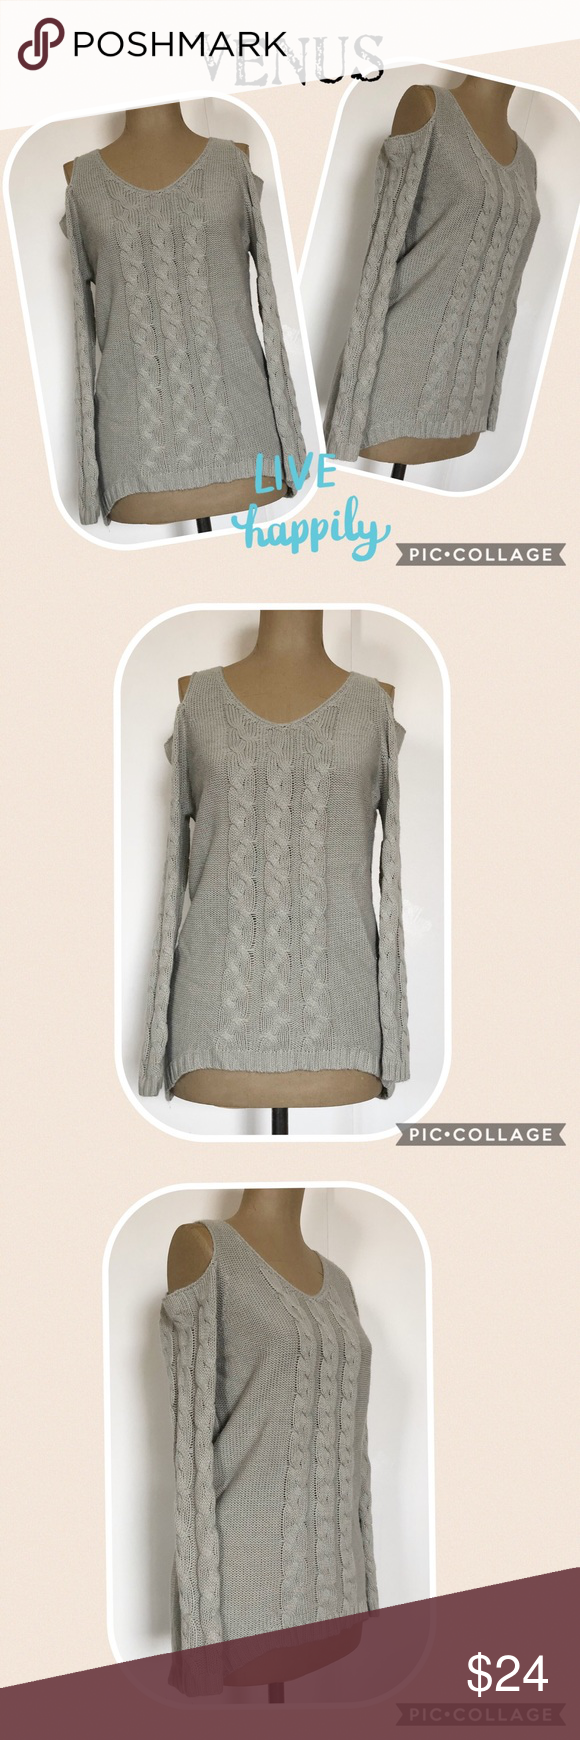 33c6b16f80 Gray Cold Shoulder Cable Knit Sweater by Venus Pretty gray cold shoulder  sweater By Venus Long sleeves Gentle V-neck Classic cable knit pattern  Gently ...